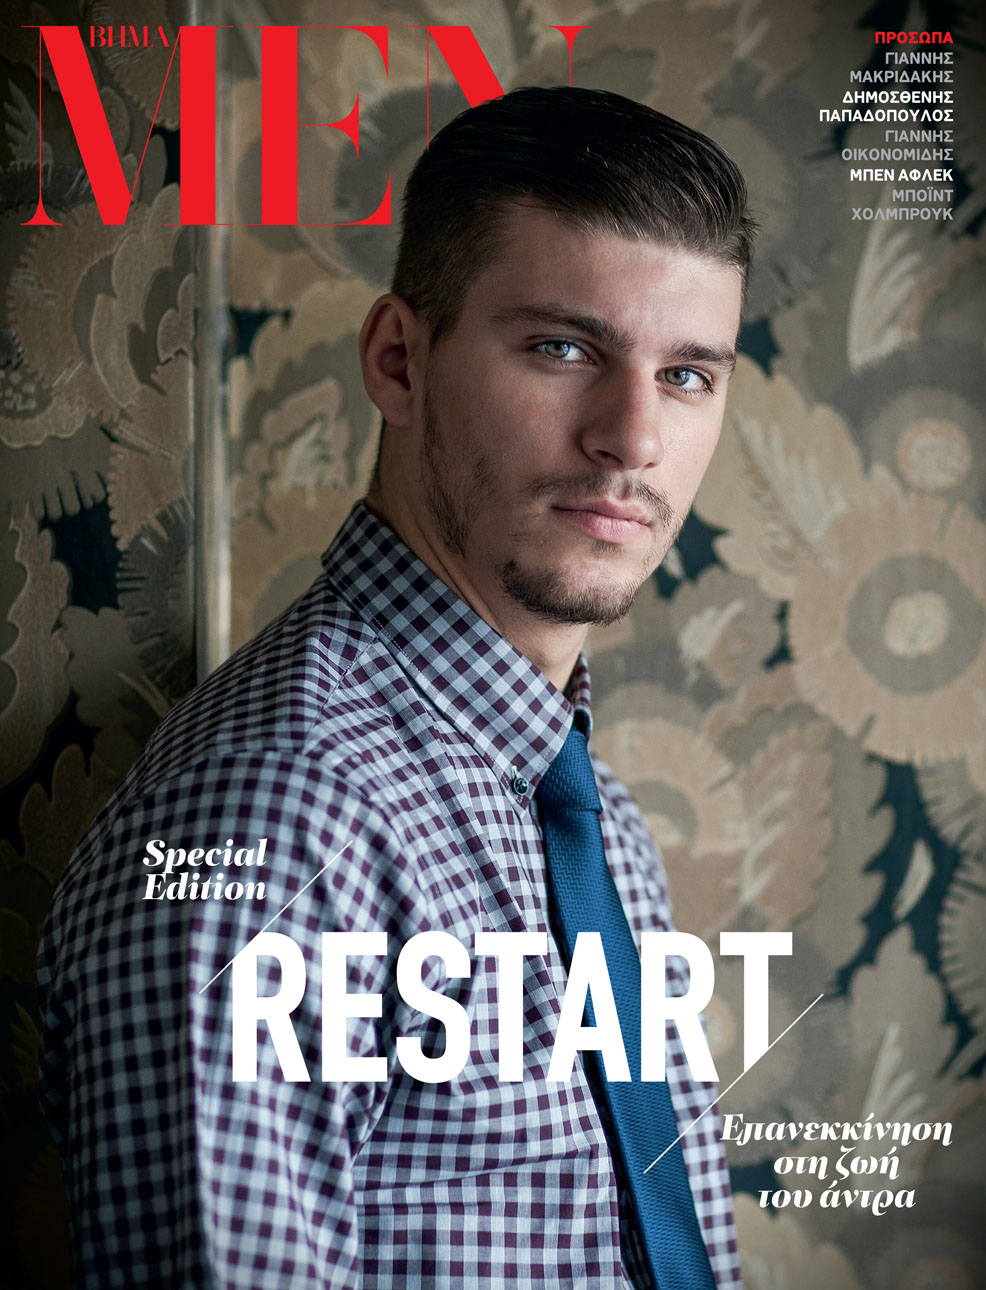 Steve on the cover of Vima Men.